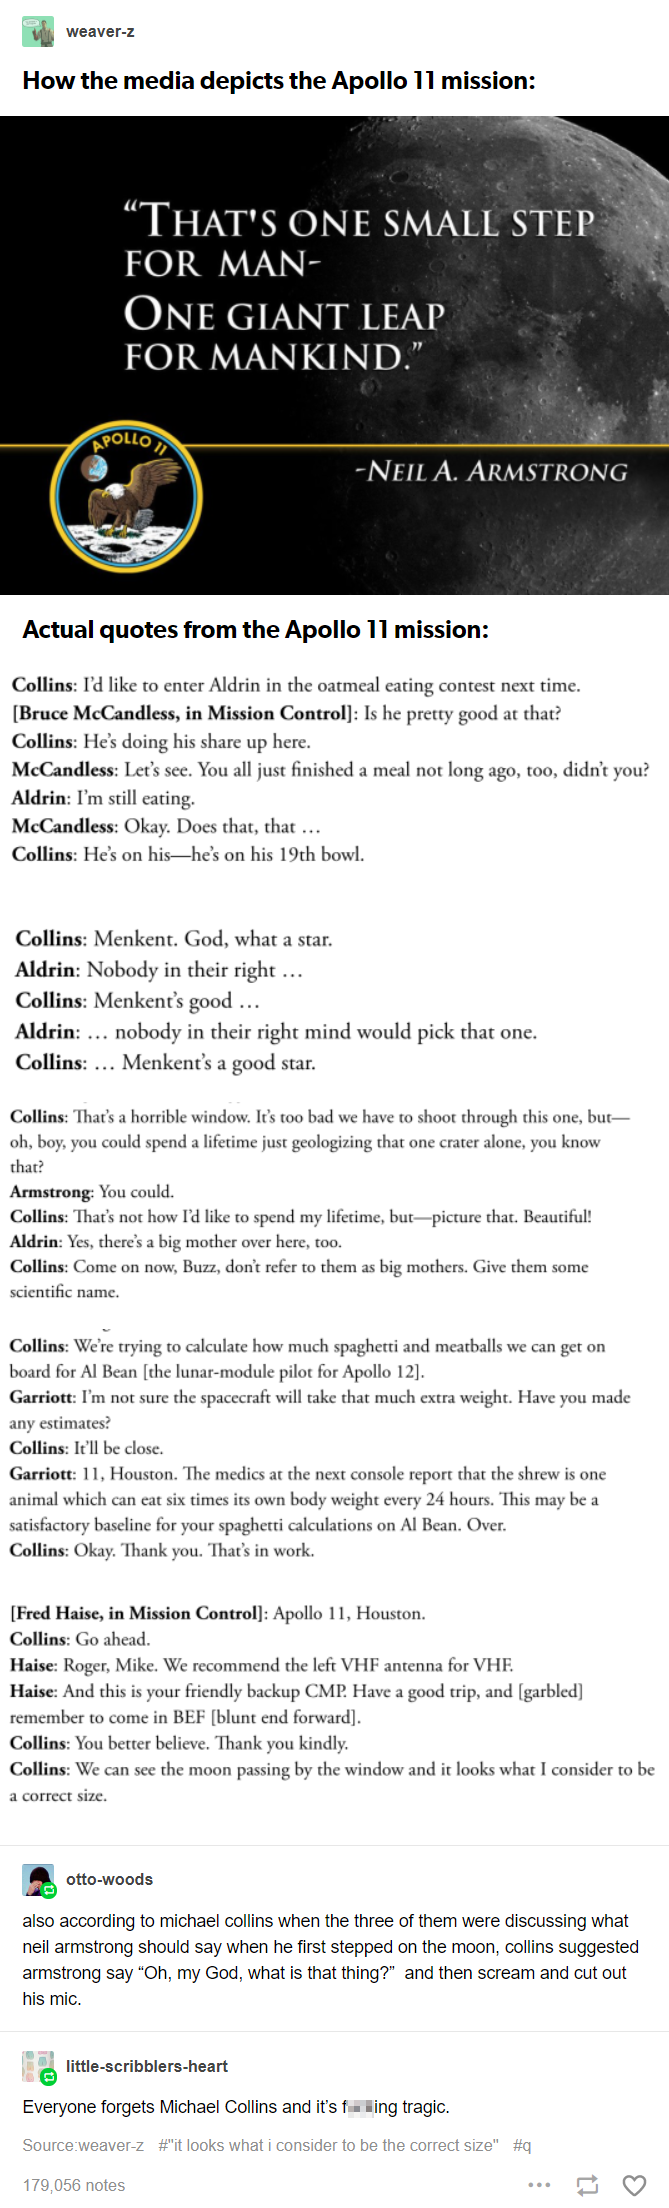 Several quotes from the Apollo 11 crew, concluding with: According to Michael Collins, when the three of them were discussing what Neil Armstrong should say when he first stepped on the moon, Collins suggested Armstrong say 'Oh my God, what is that thing?' and then scream and cut out his mic.